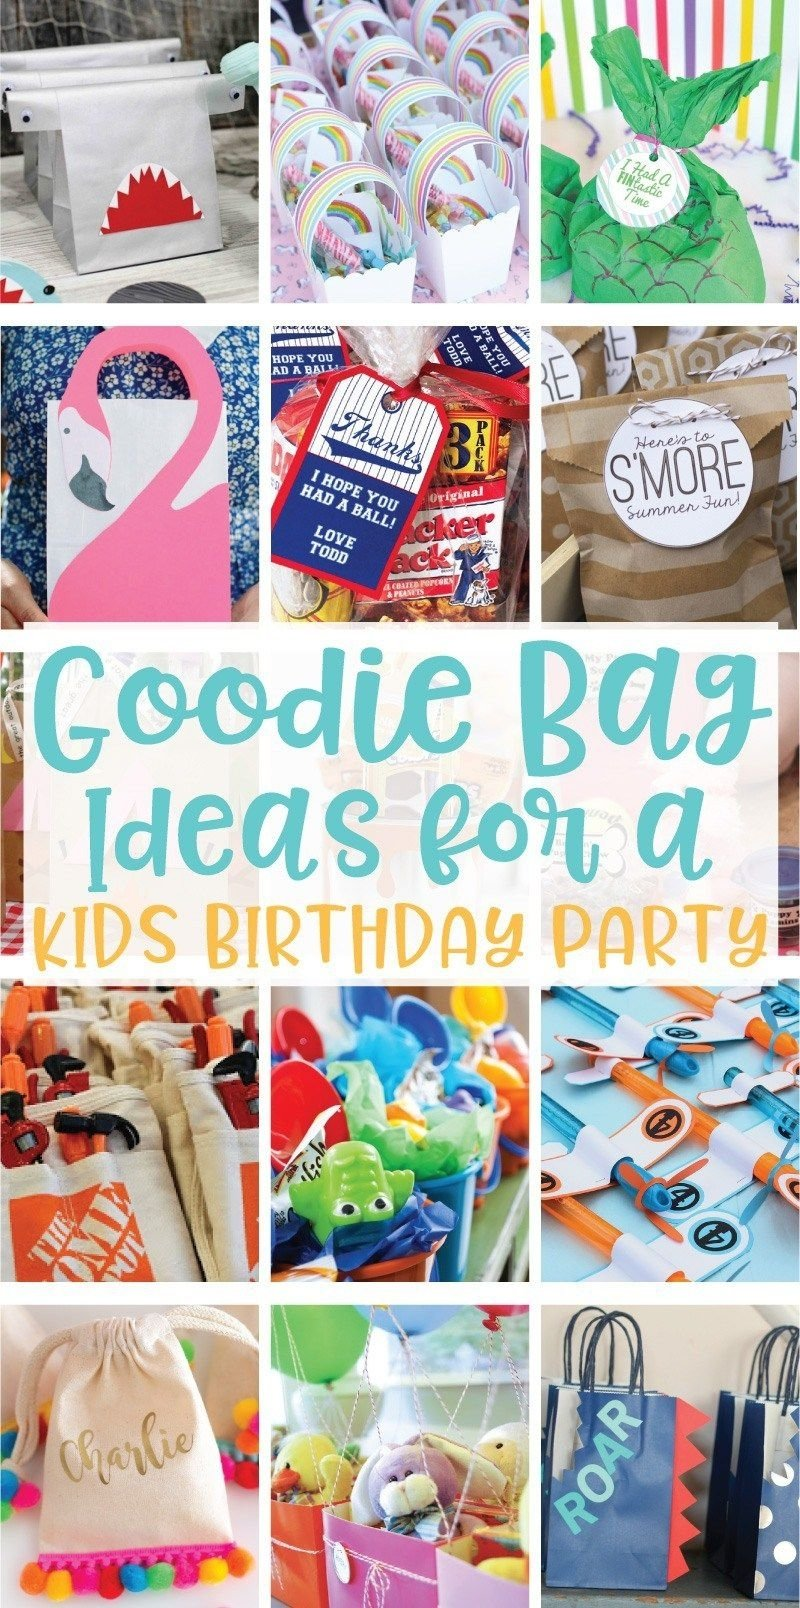 20 creative goodie bag ideas for kids birthday parties on | goodie